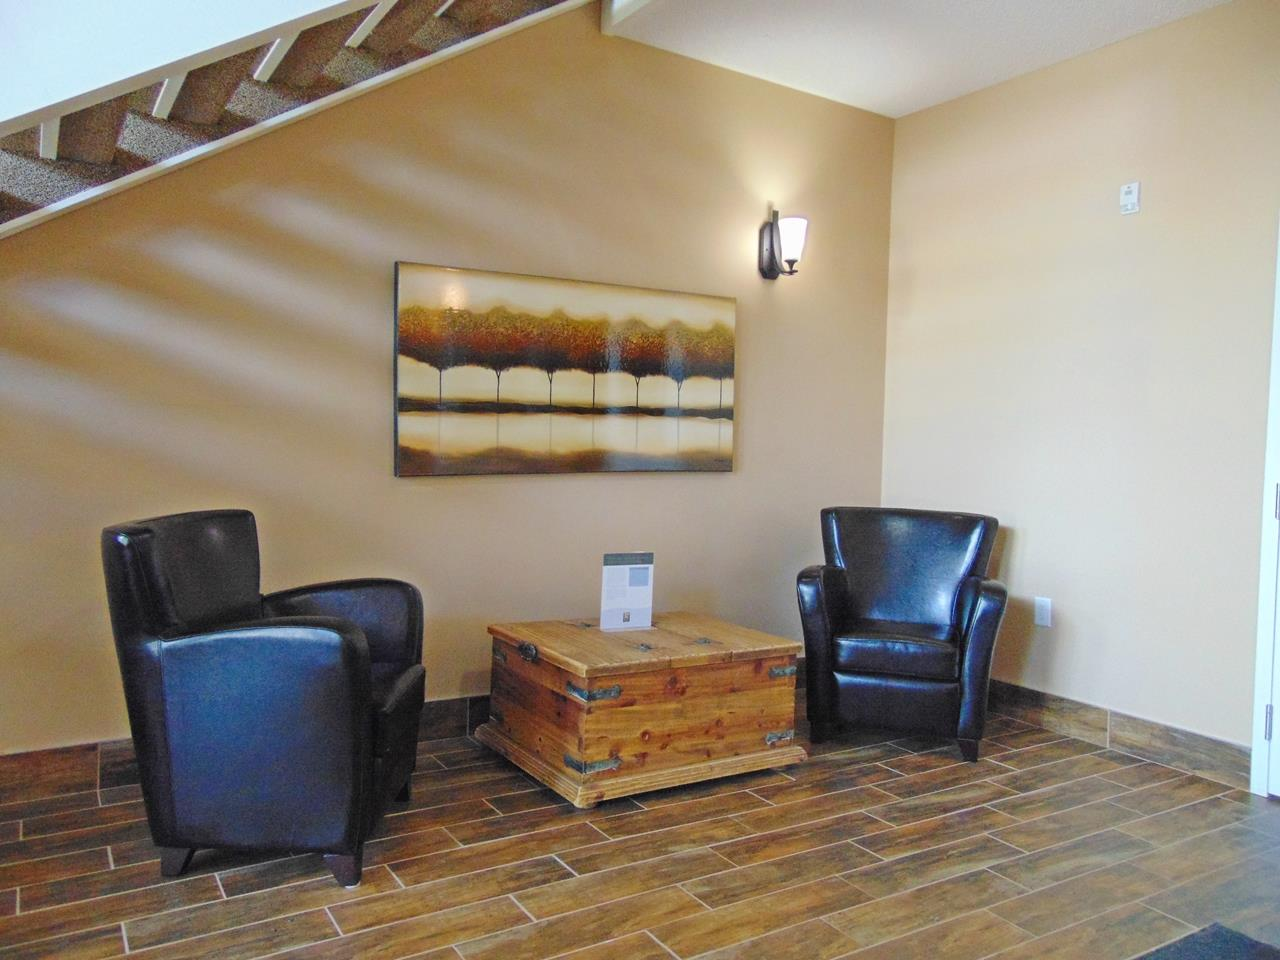 Photo 3: 203 4922 52 Street: Gibbons Condo for sale : MLS® # E4071334